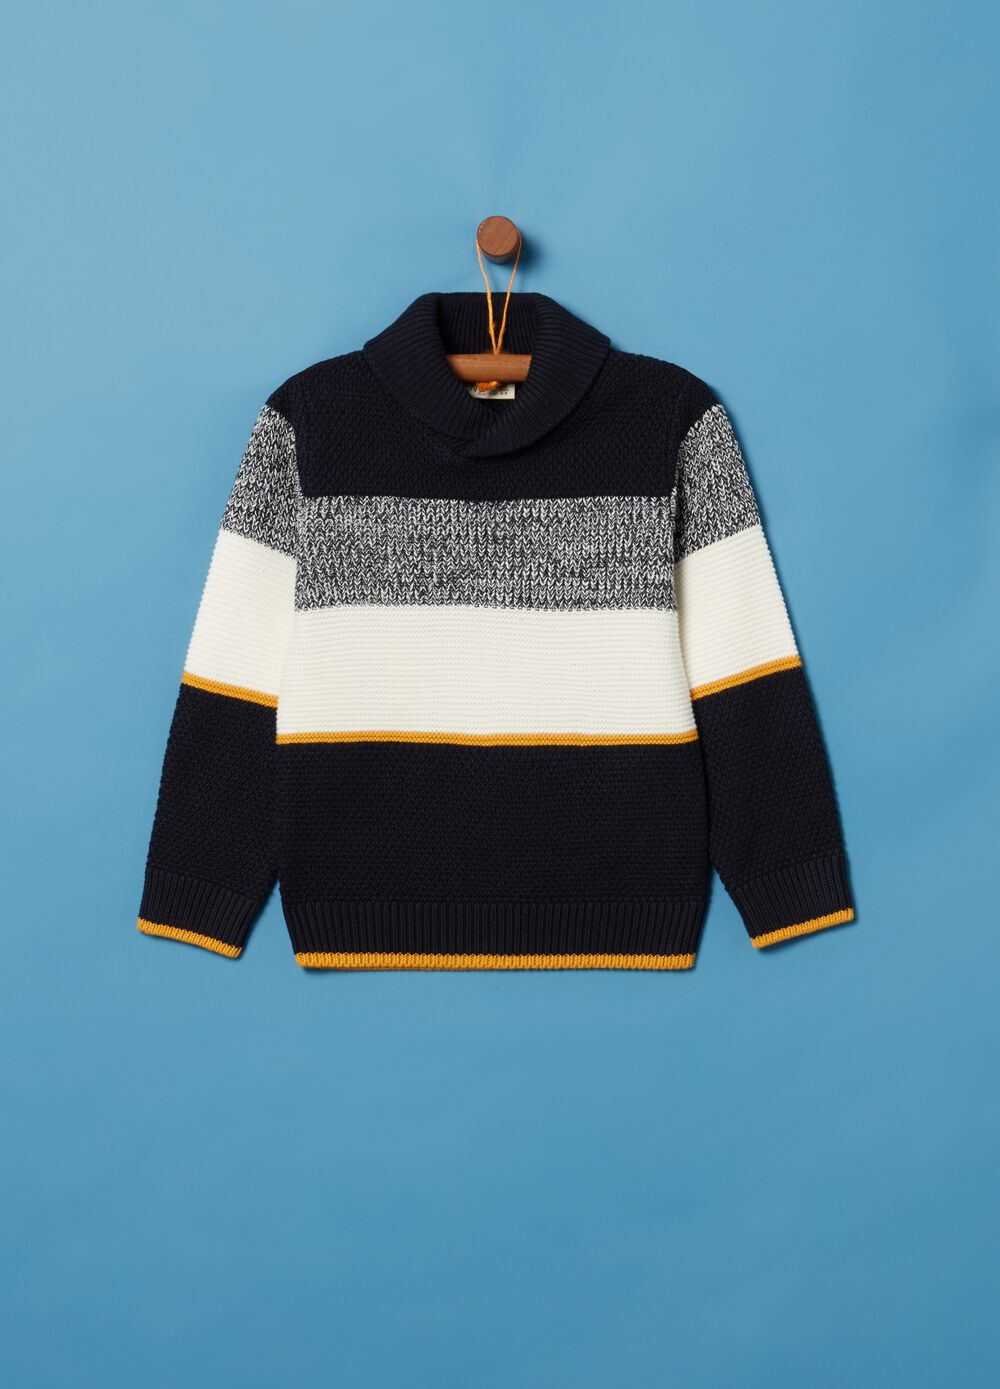 Knitted top with intarsia striped pattern